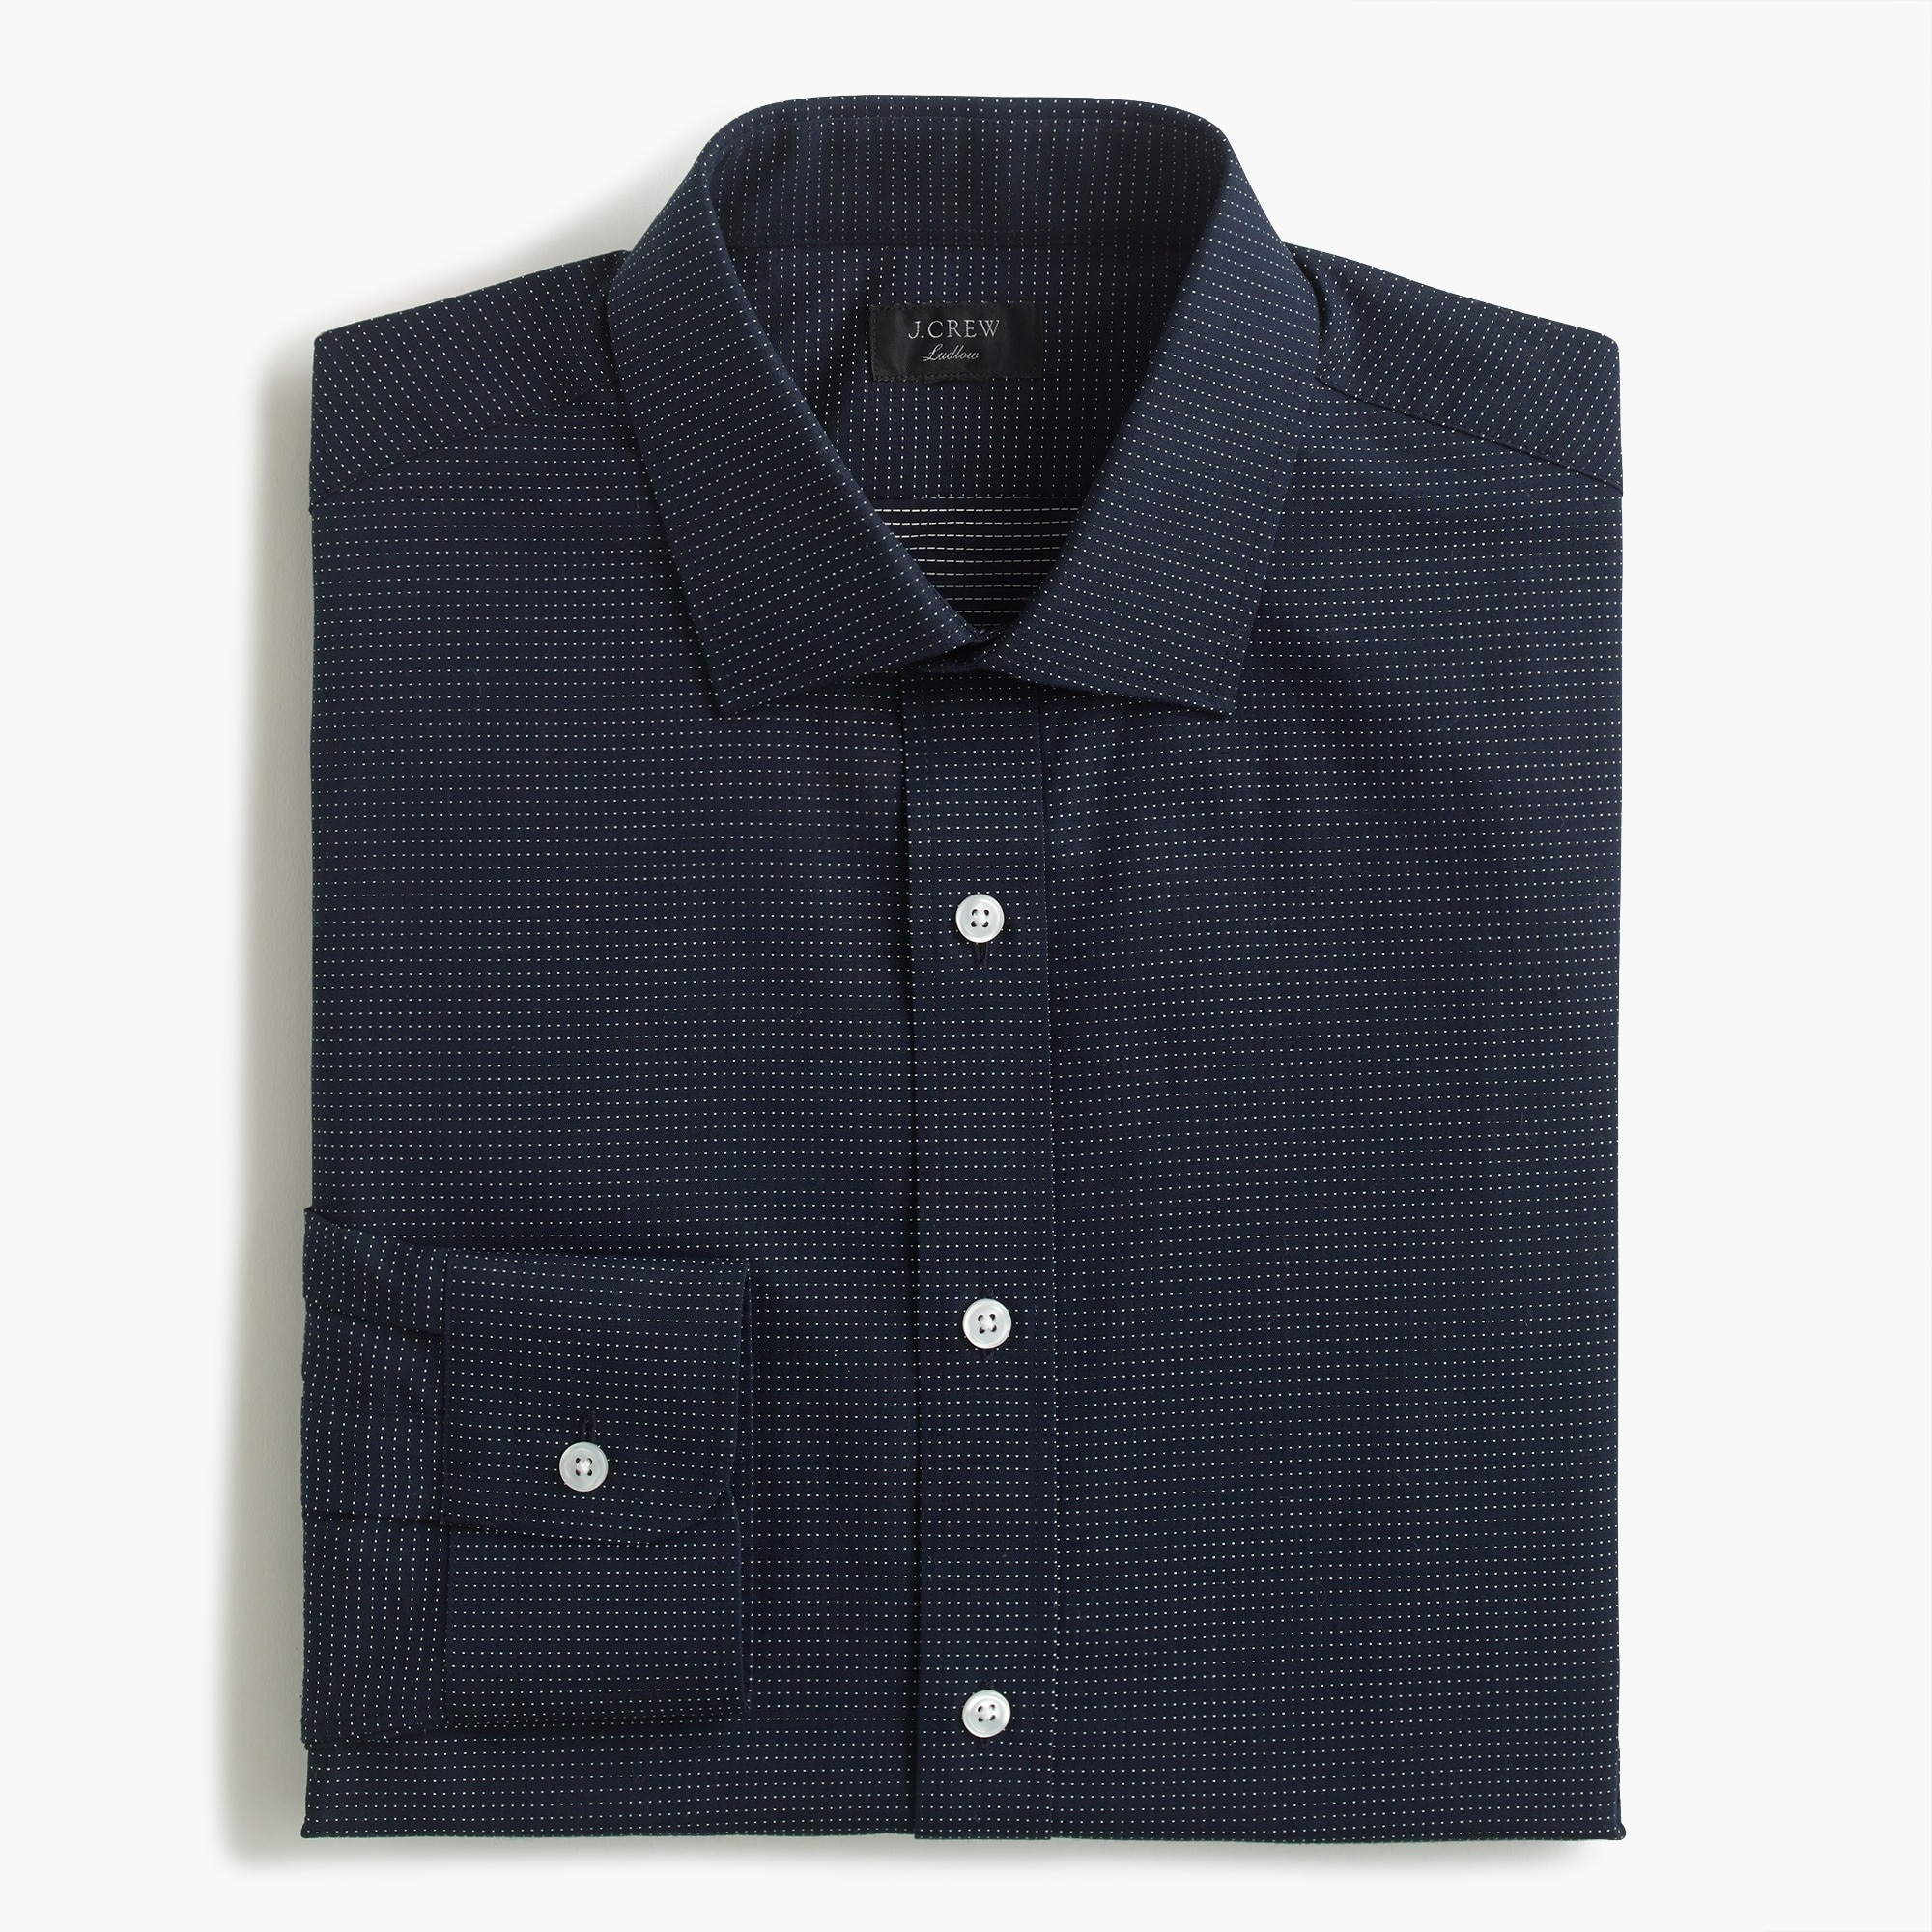 Classic Ludlow stretch two-ply easy-care cotton dress shirt in dobby print